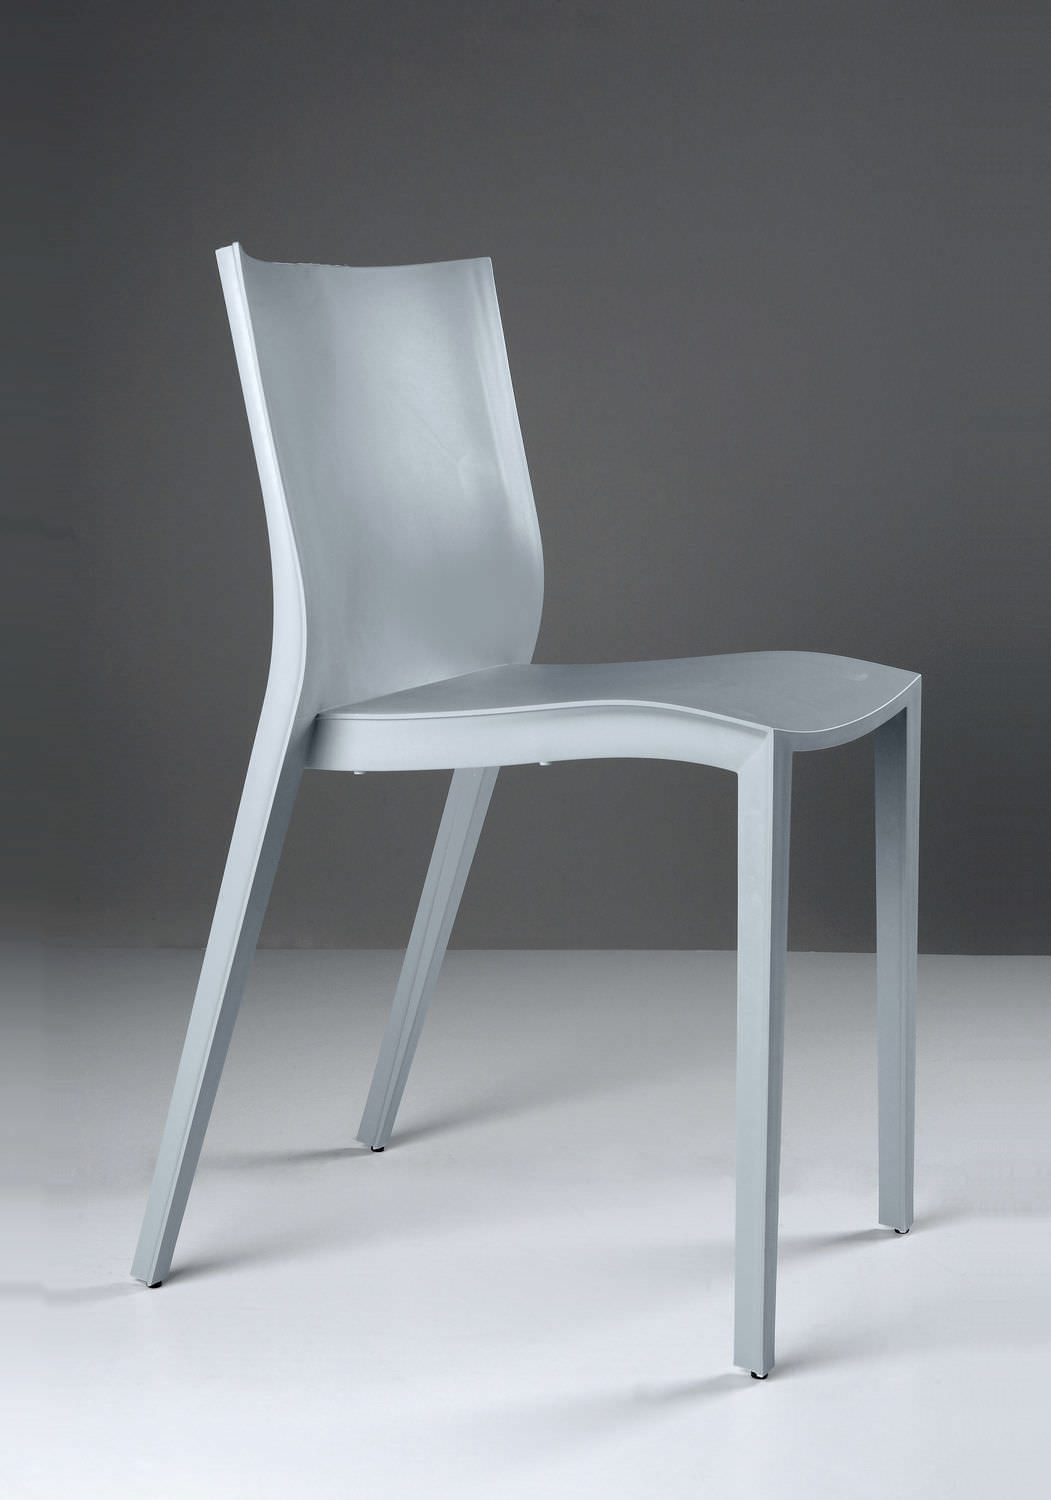 Contemporary chair / plastic / by Philippe Starck - SLICK SLICK ...